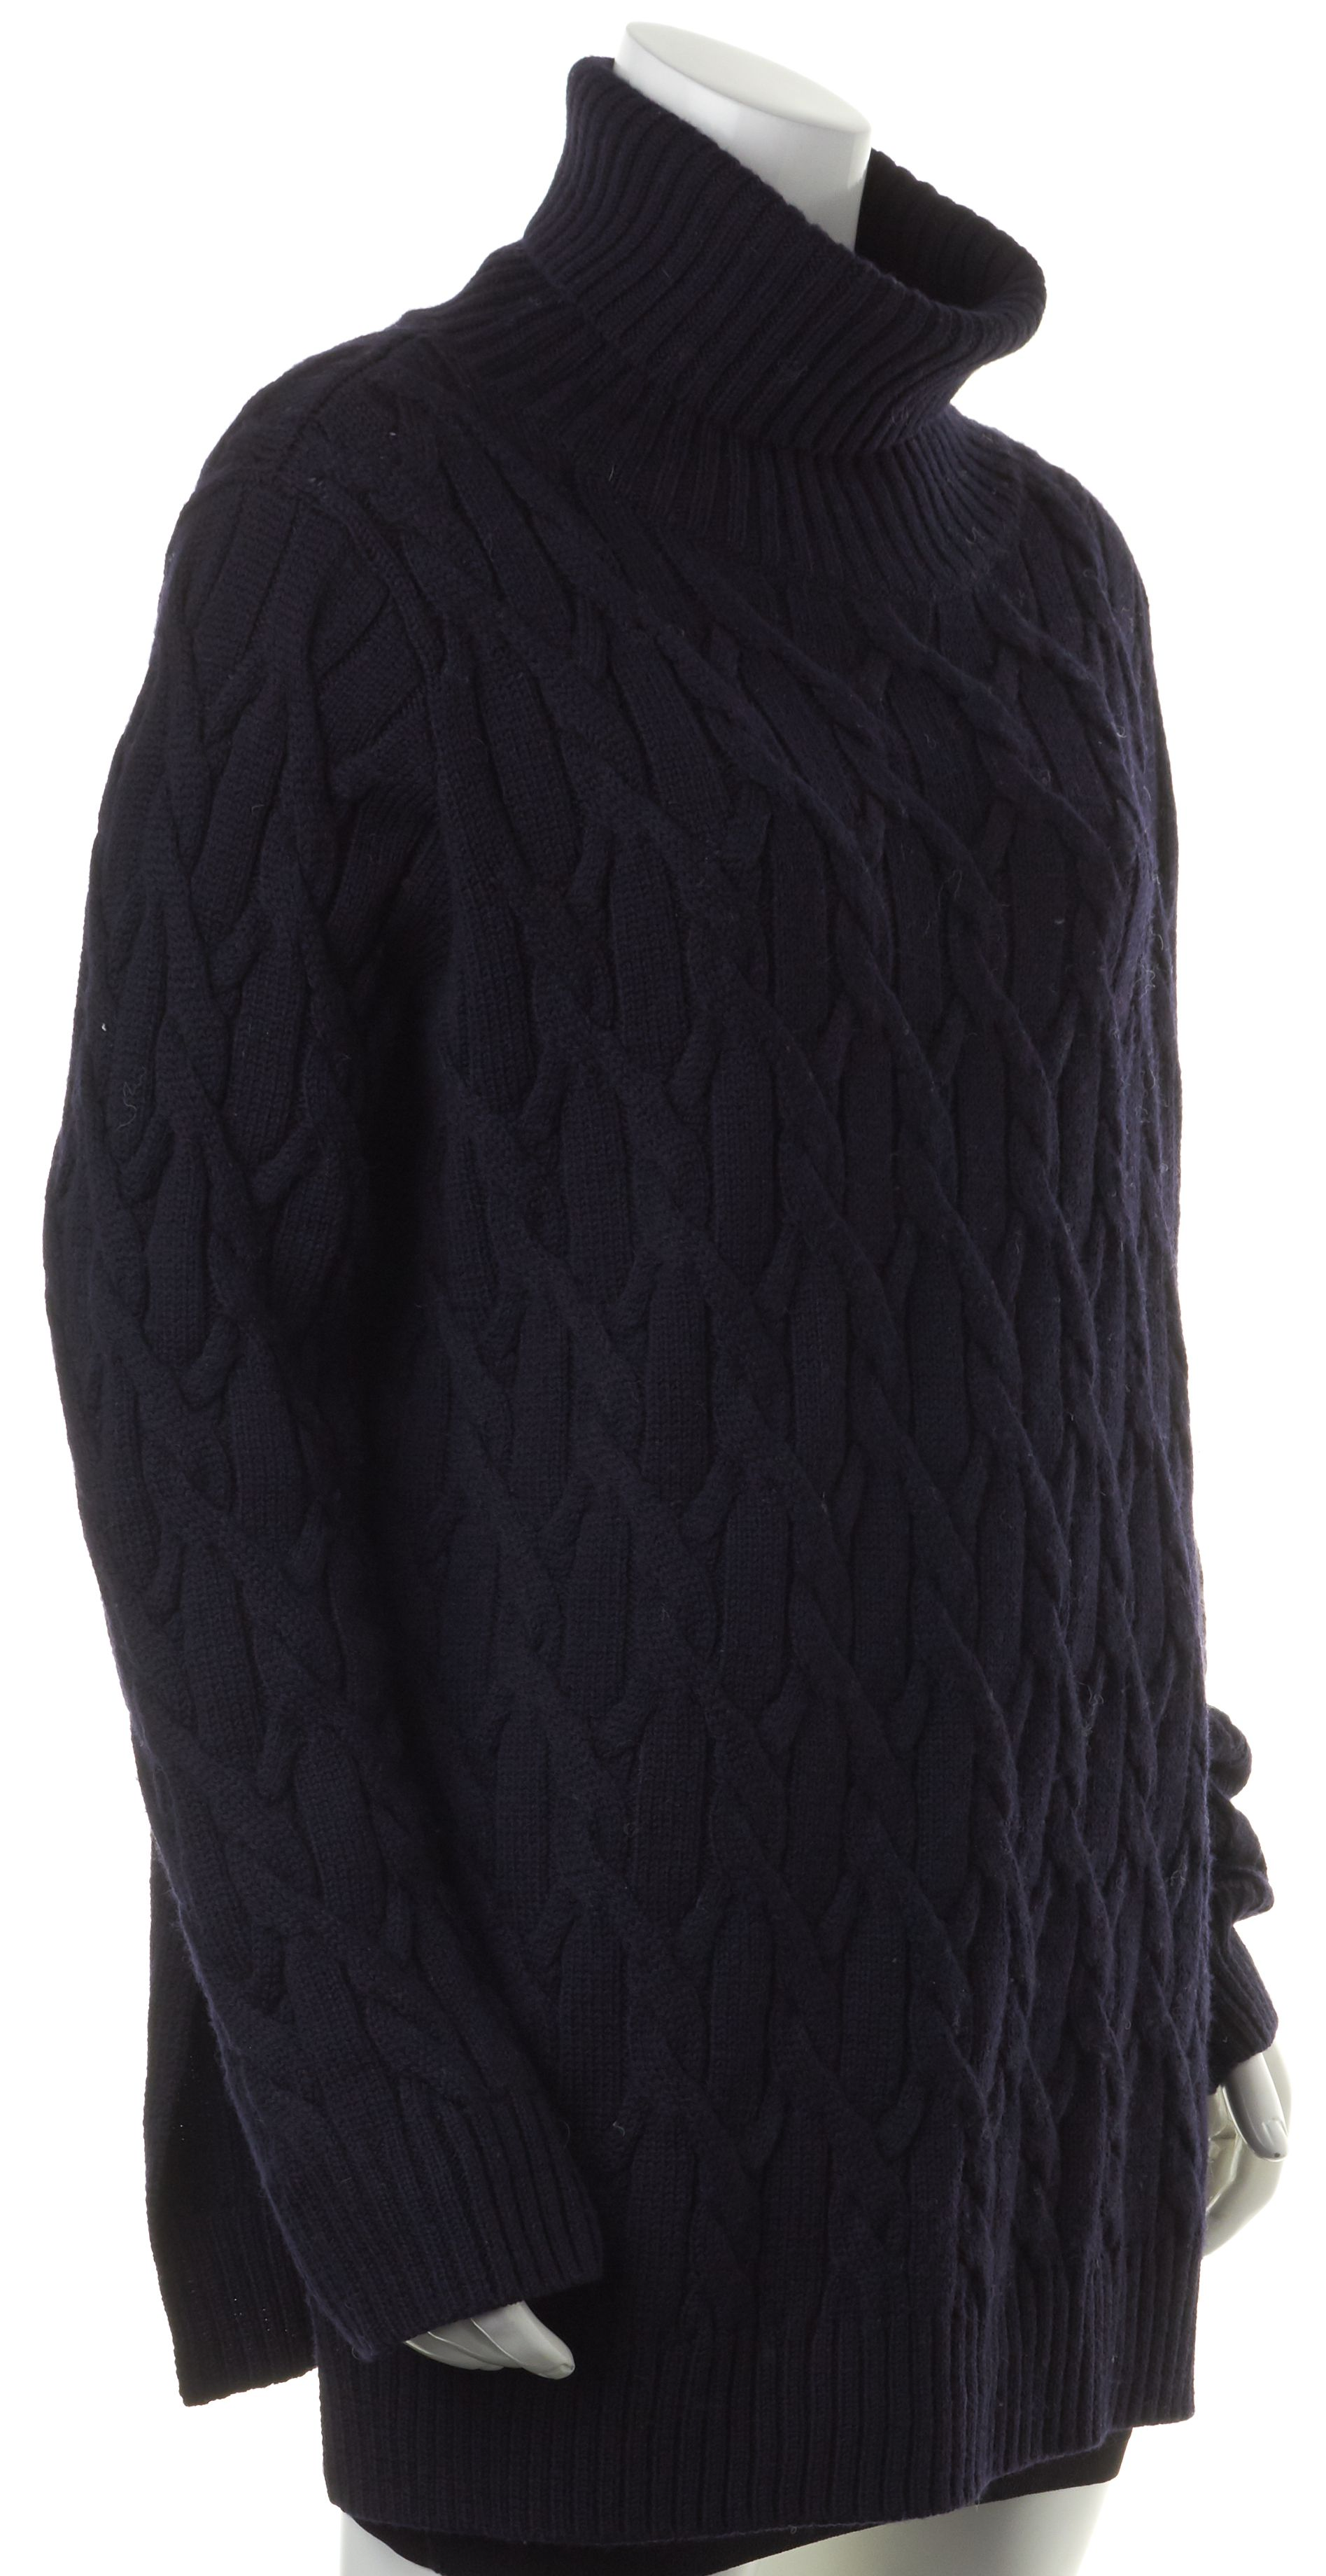 COS Navy Blue Wool Cable Knit Turtleneck Sweater | Material World